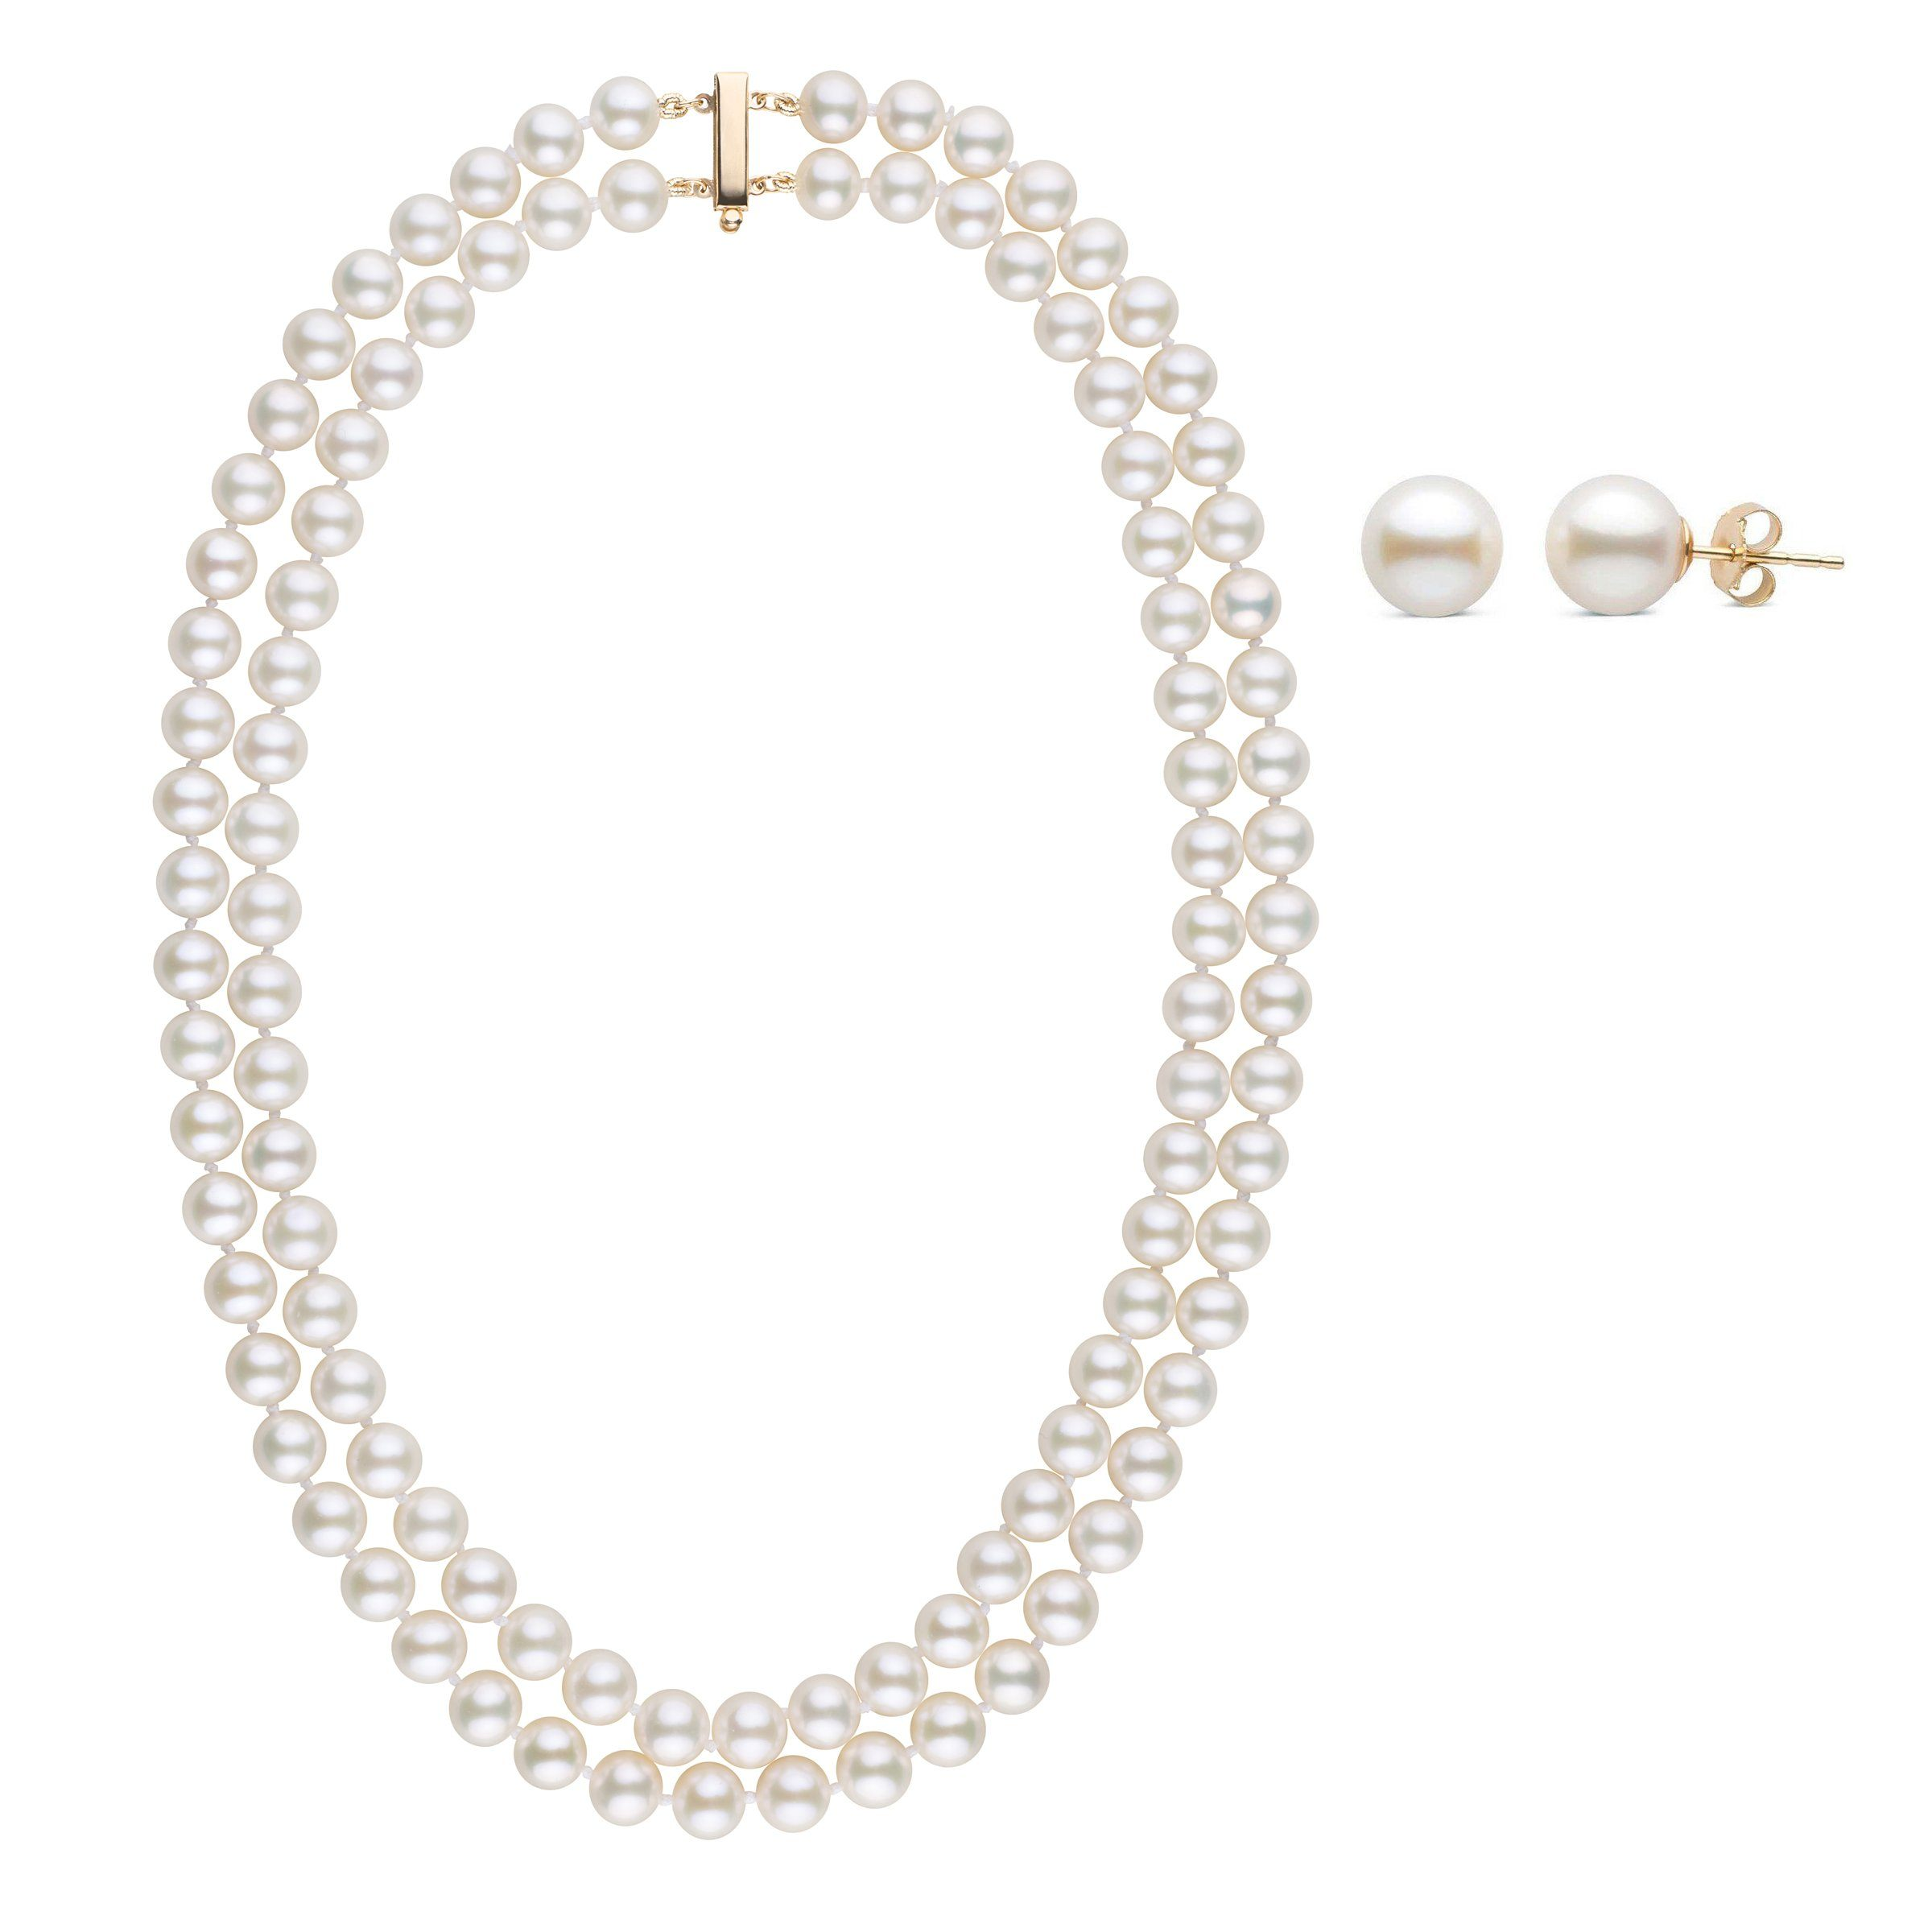 7.5-8.0 mm AAA White Freshwater Double Strand Necklace & Earring Set